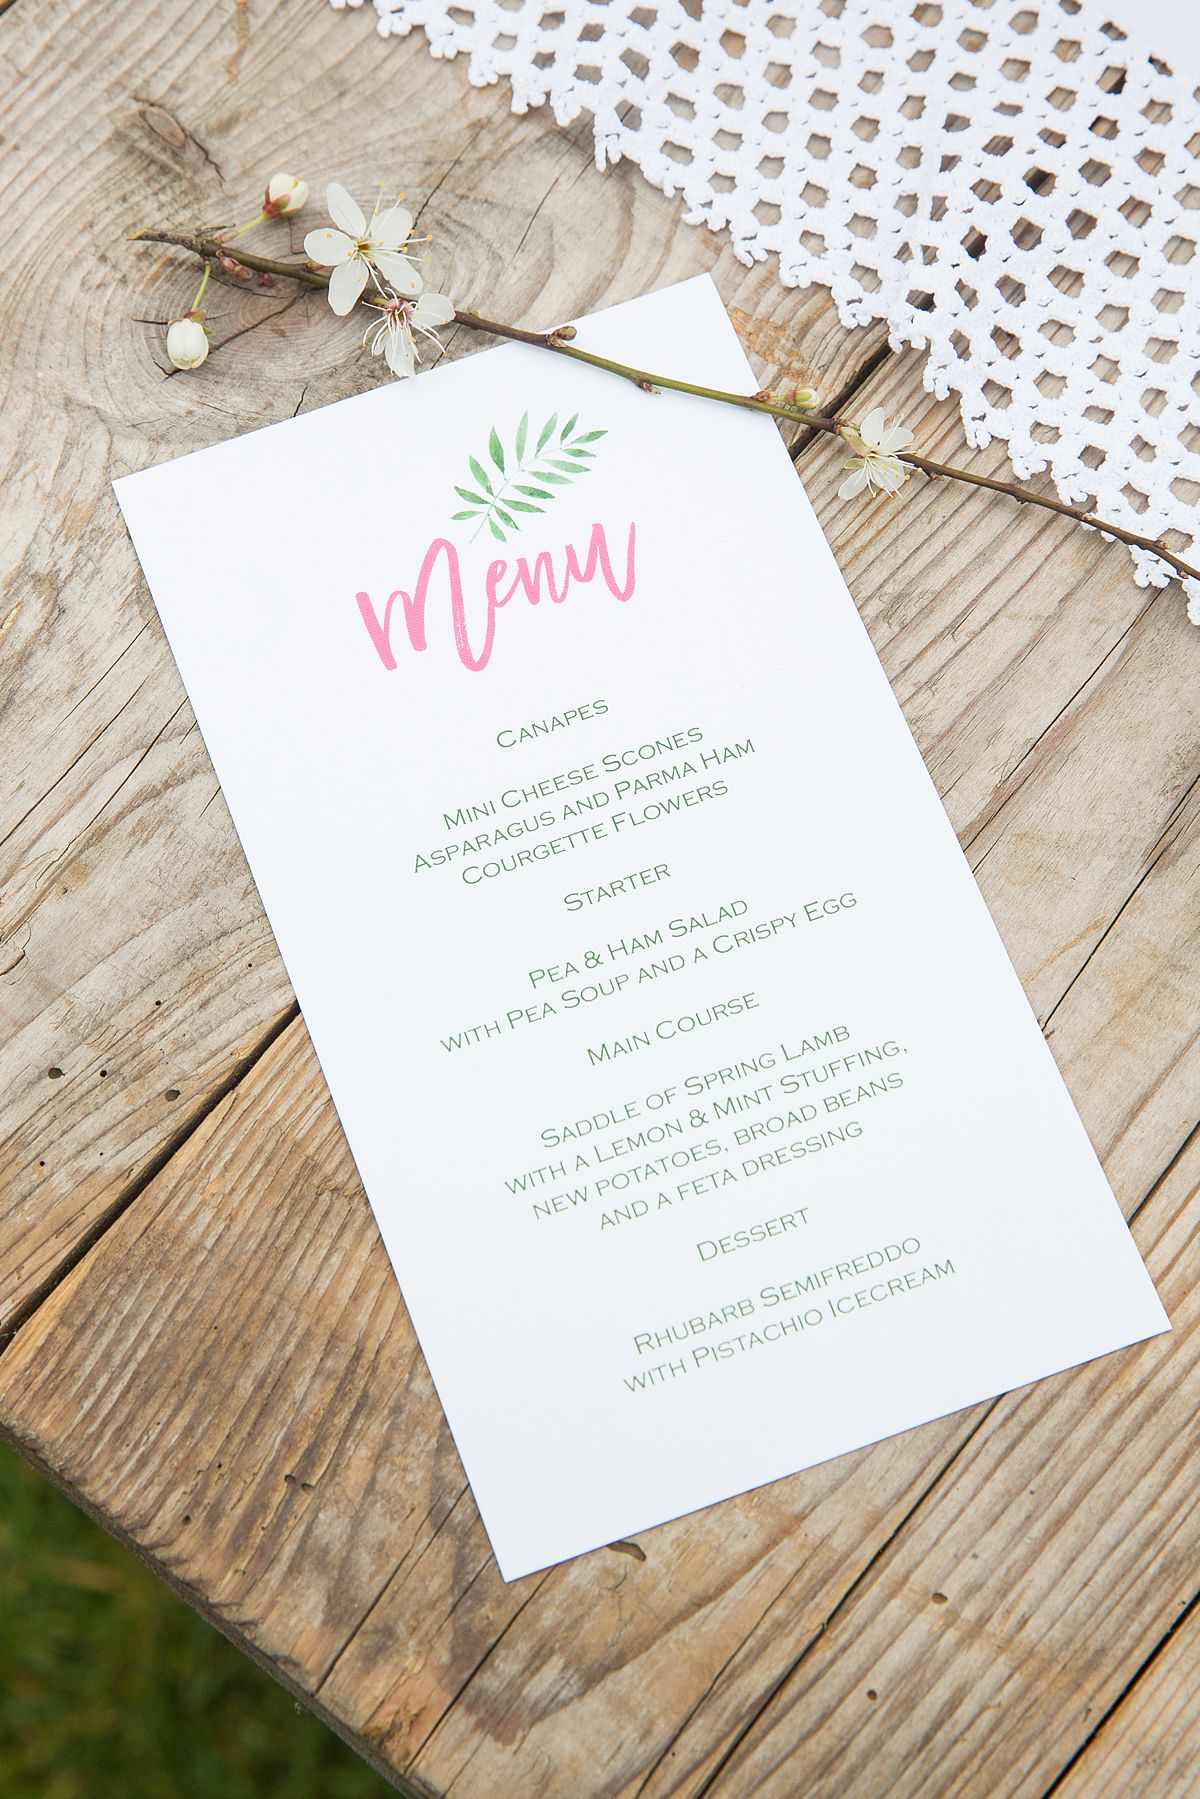 Knots & Kisses created the stationery to compliment the botanical theme with rustic twine and an elegant use of text and colour.